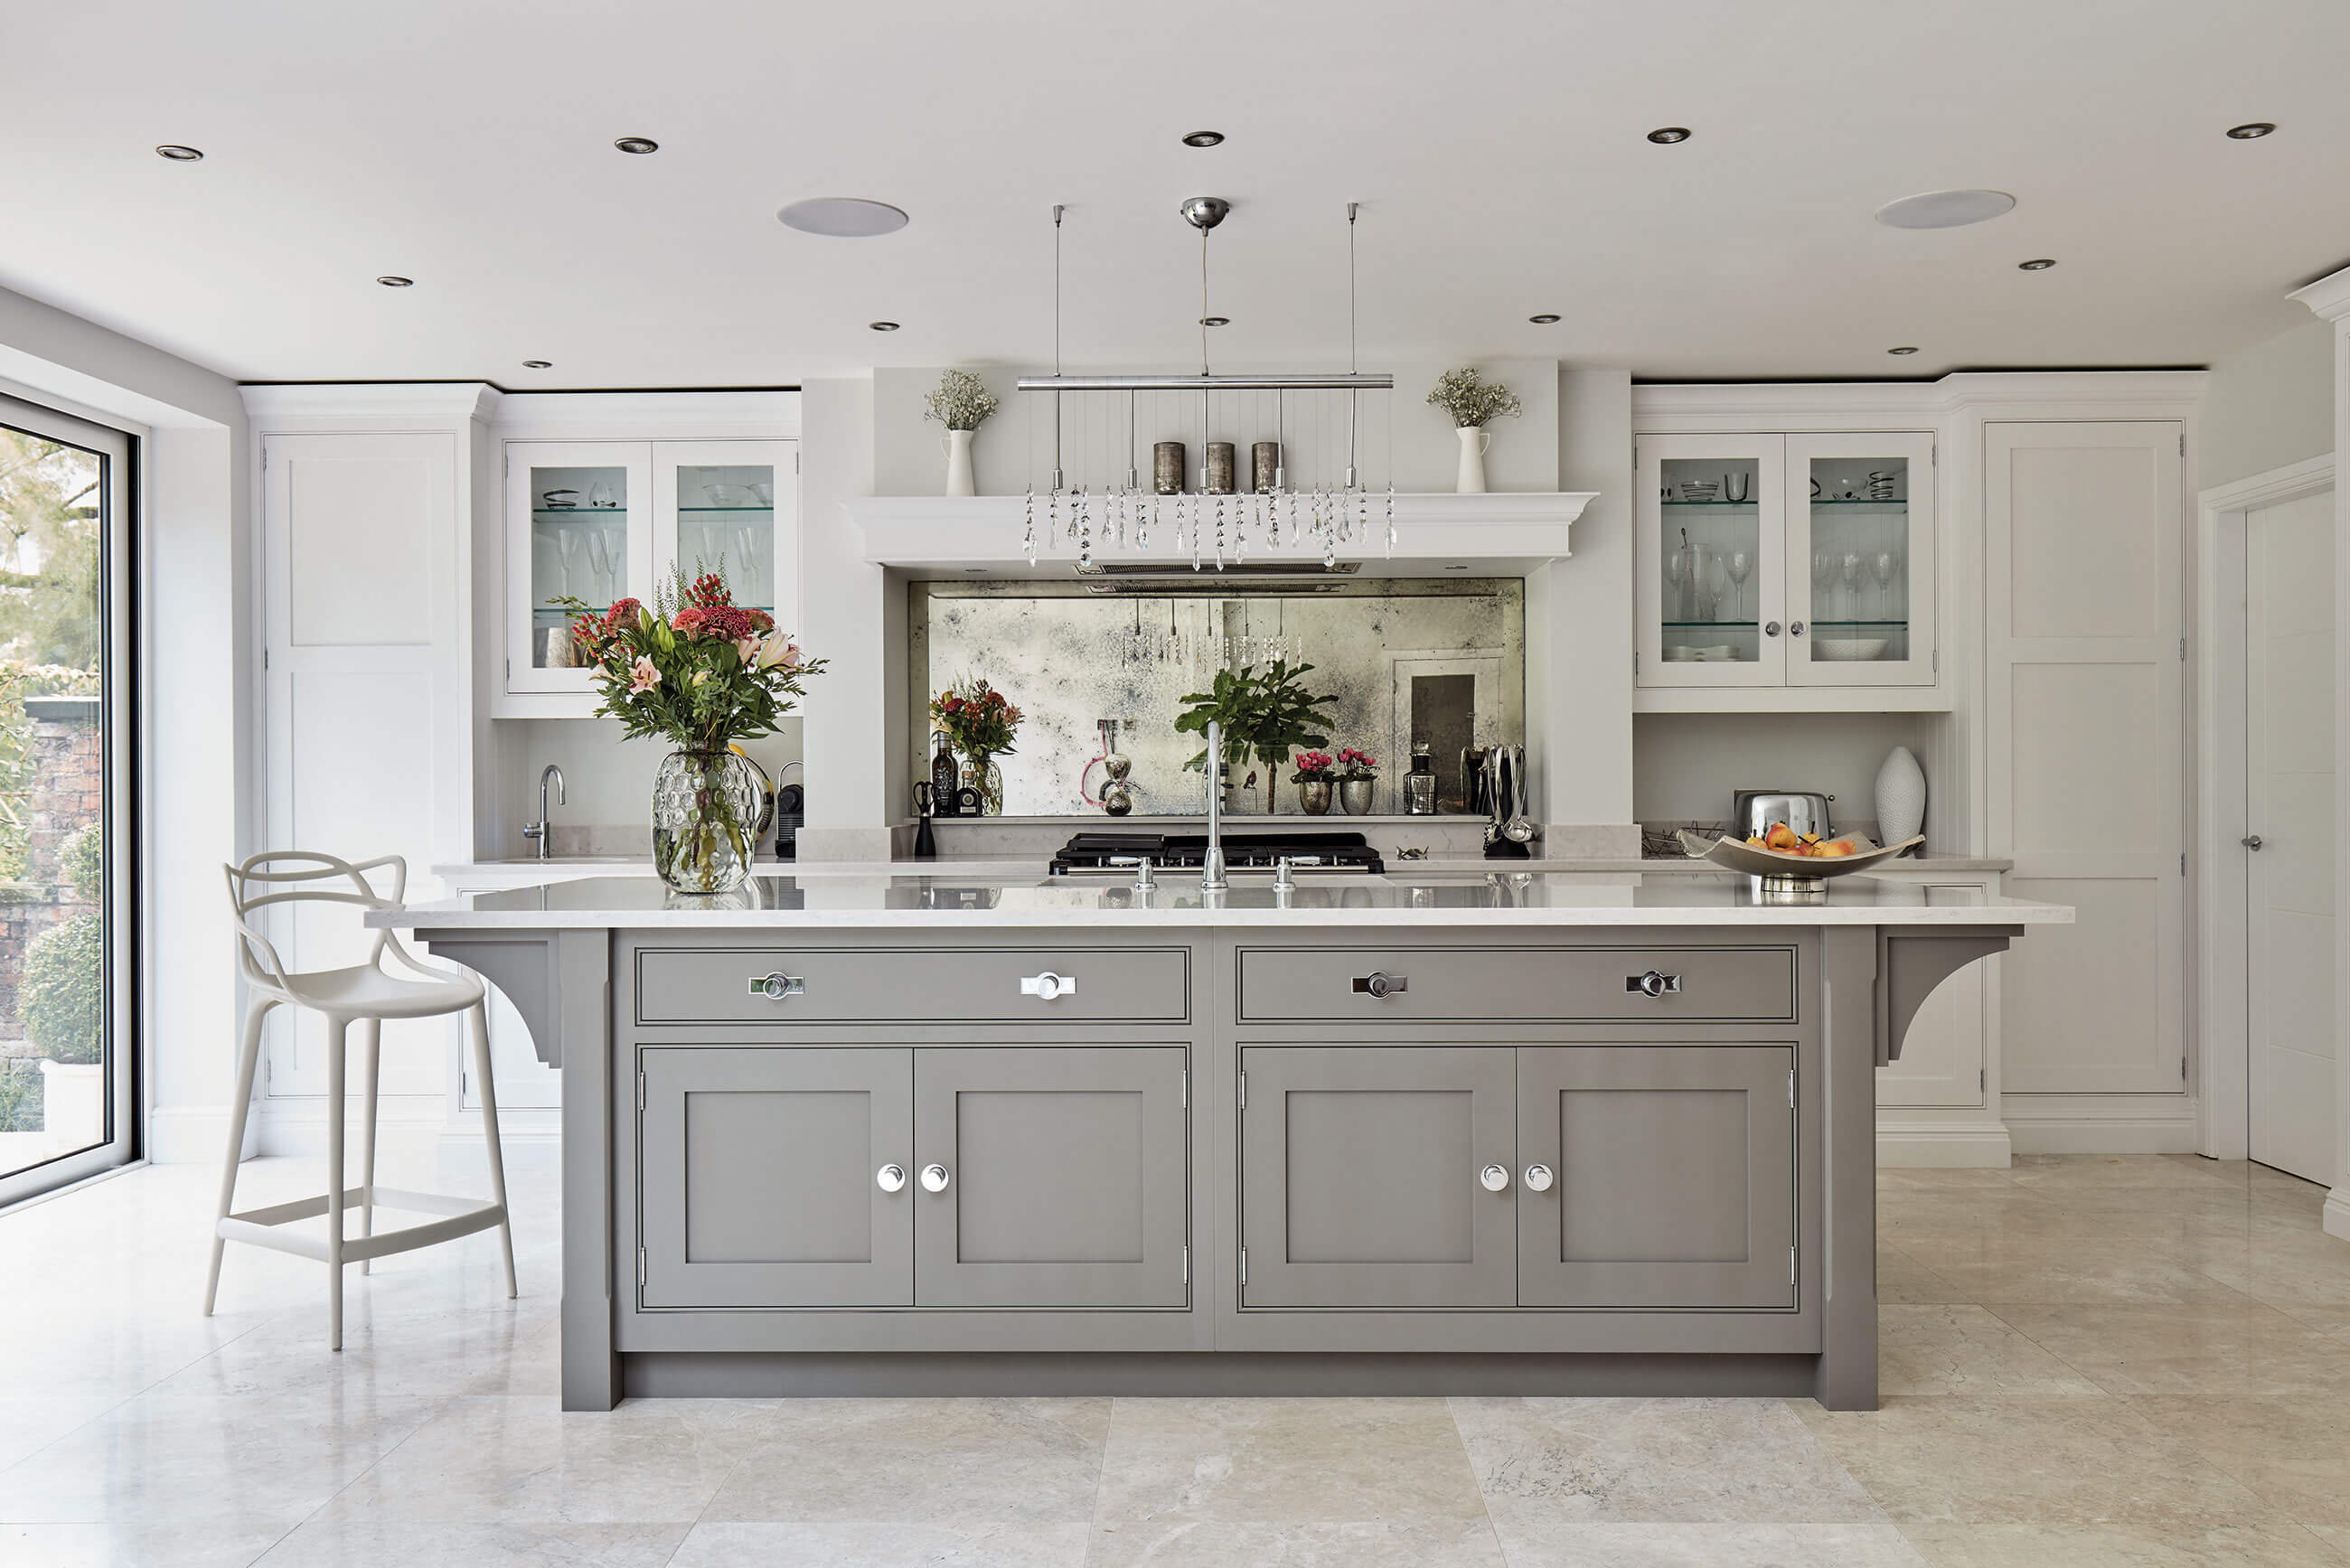 designer kitchen designer kitchens traditional contemporary kitchens